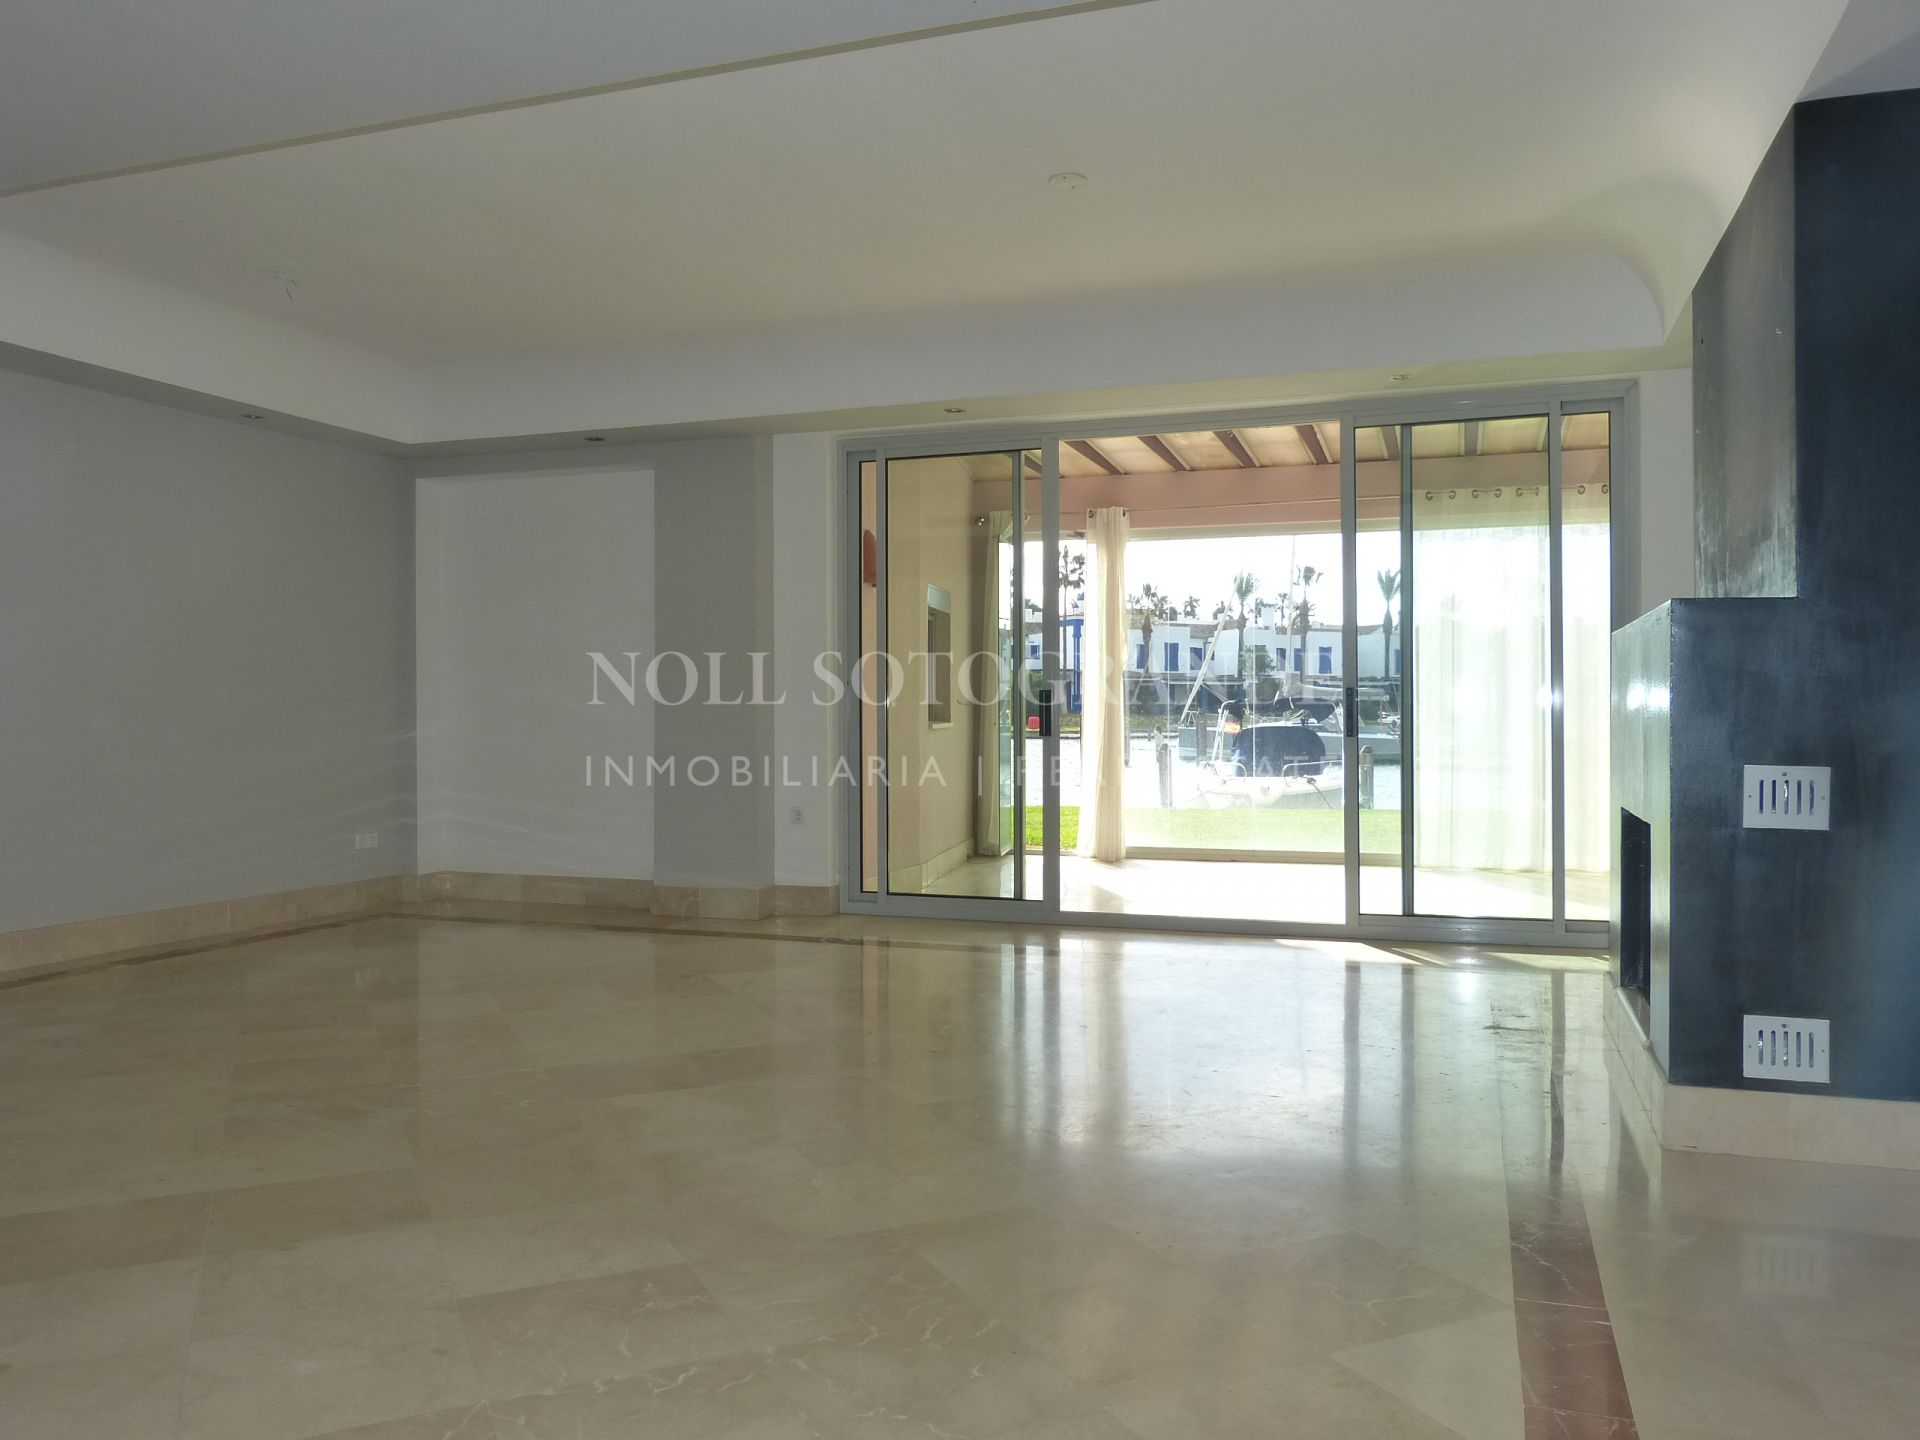 Unfurnished 4 bedroom apartment for rent in Sotogrande Marina